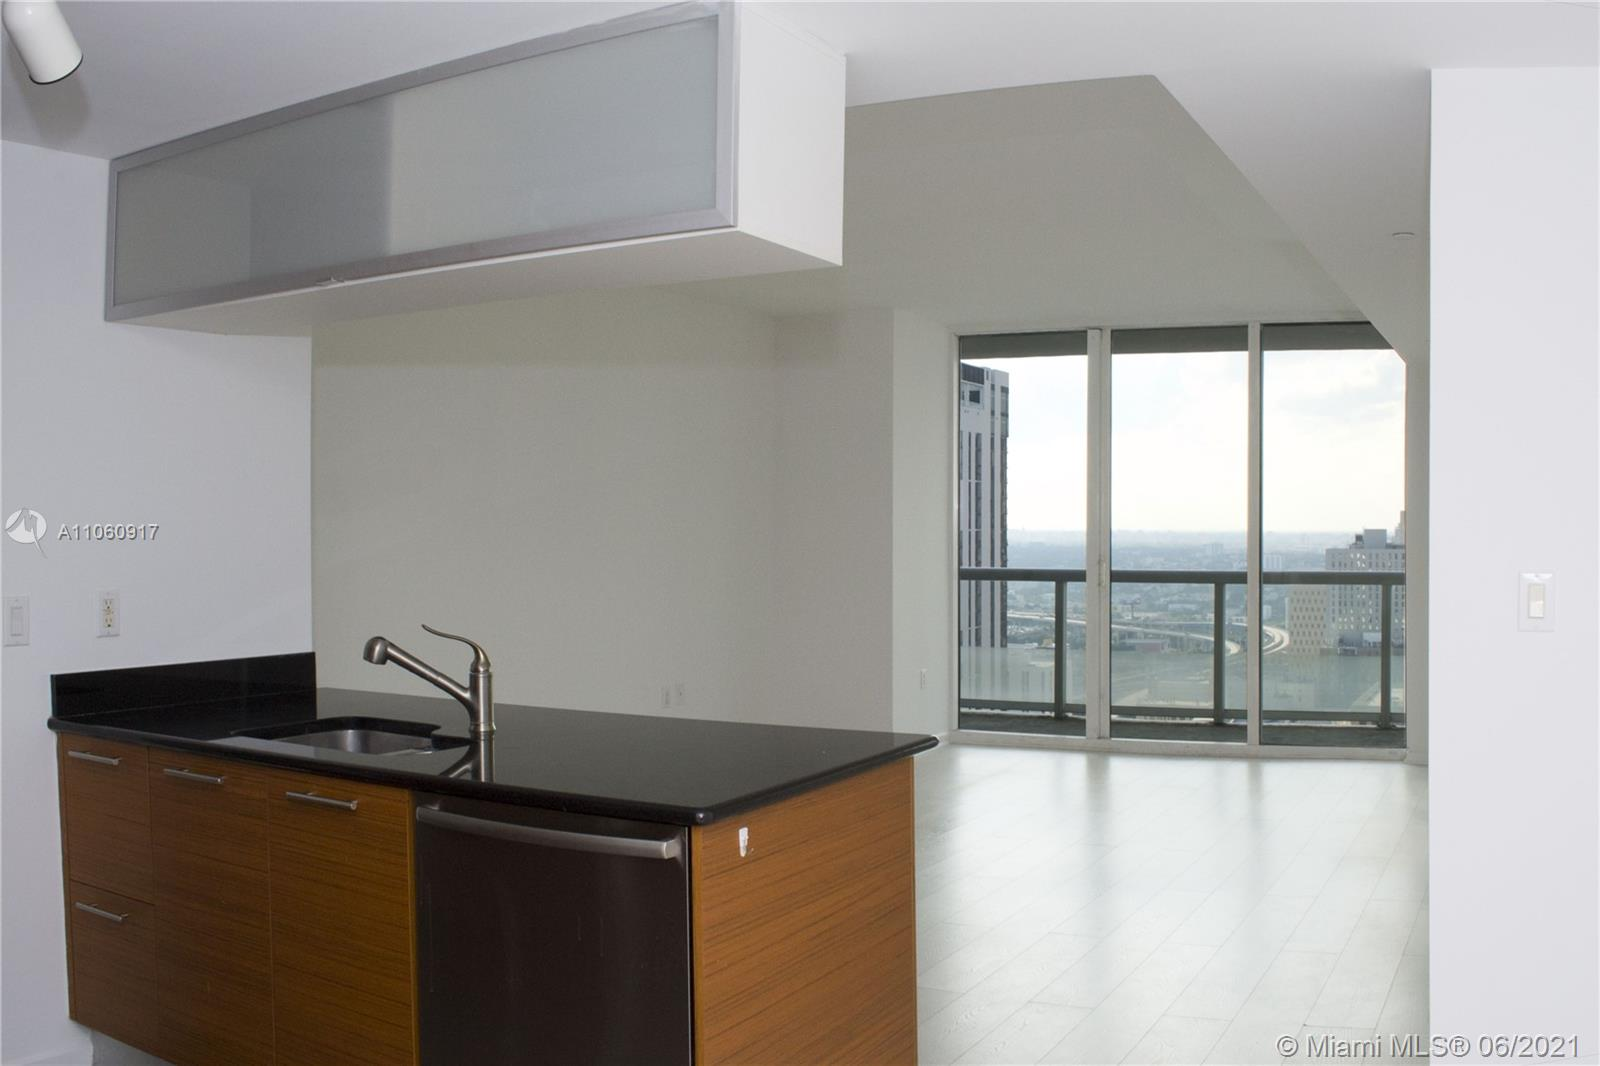 Beautiful 1 Bedroom plus Den available immediately for Long Term Lease at 50 Biscayne.  Panoramic Views from the 34th Floor. 50 Biscayne is full Service, with Gym, Pools, Spa, 24/7 Security and Valet. 1 Parking Space included as well as basic Cable and Internet. Call Christina for Access and Information.